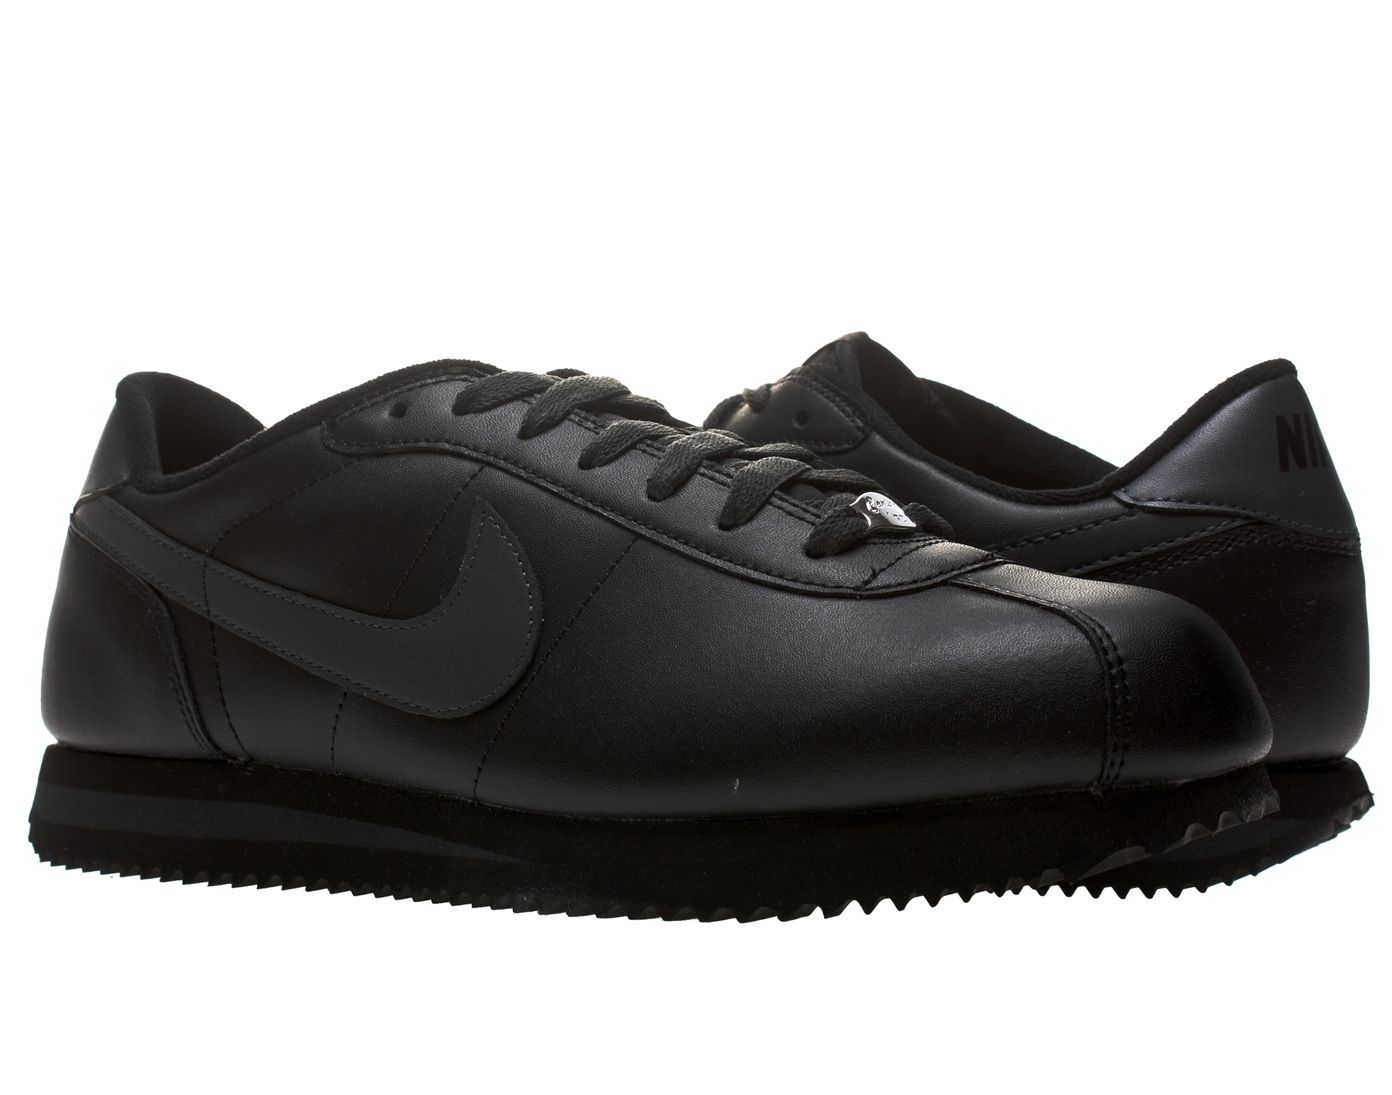 all black leather nike cortez